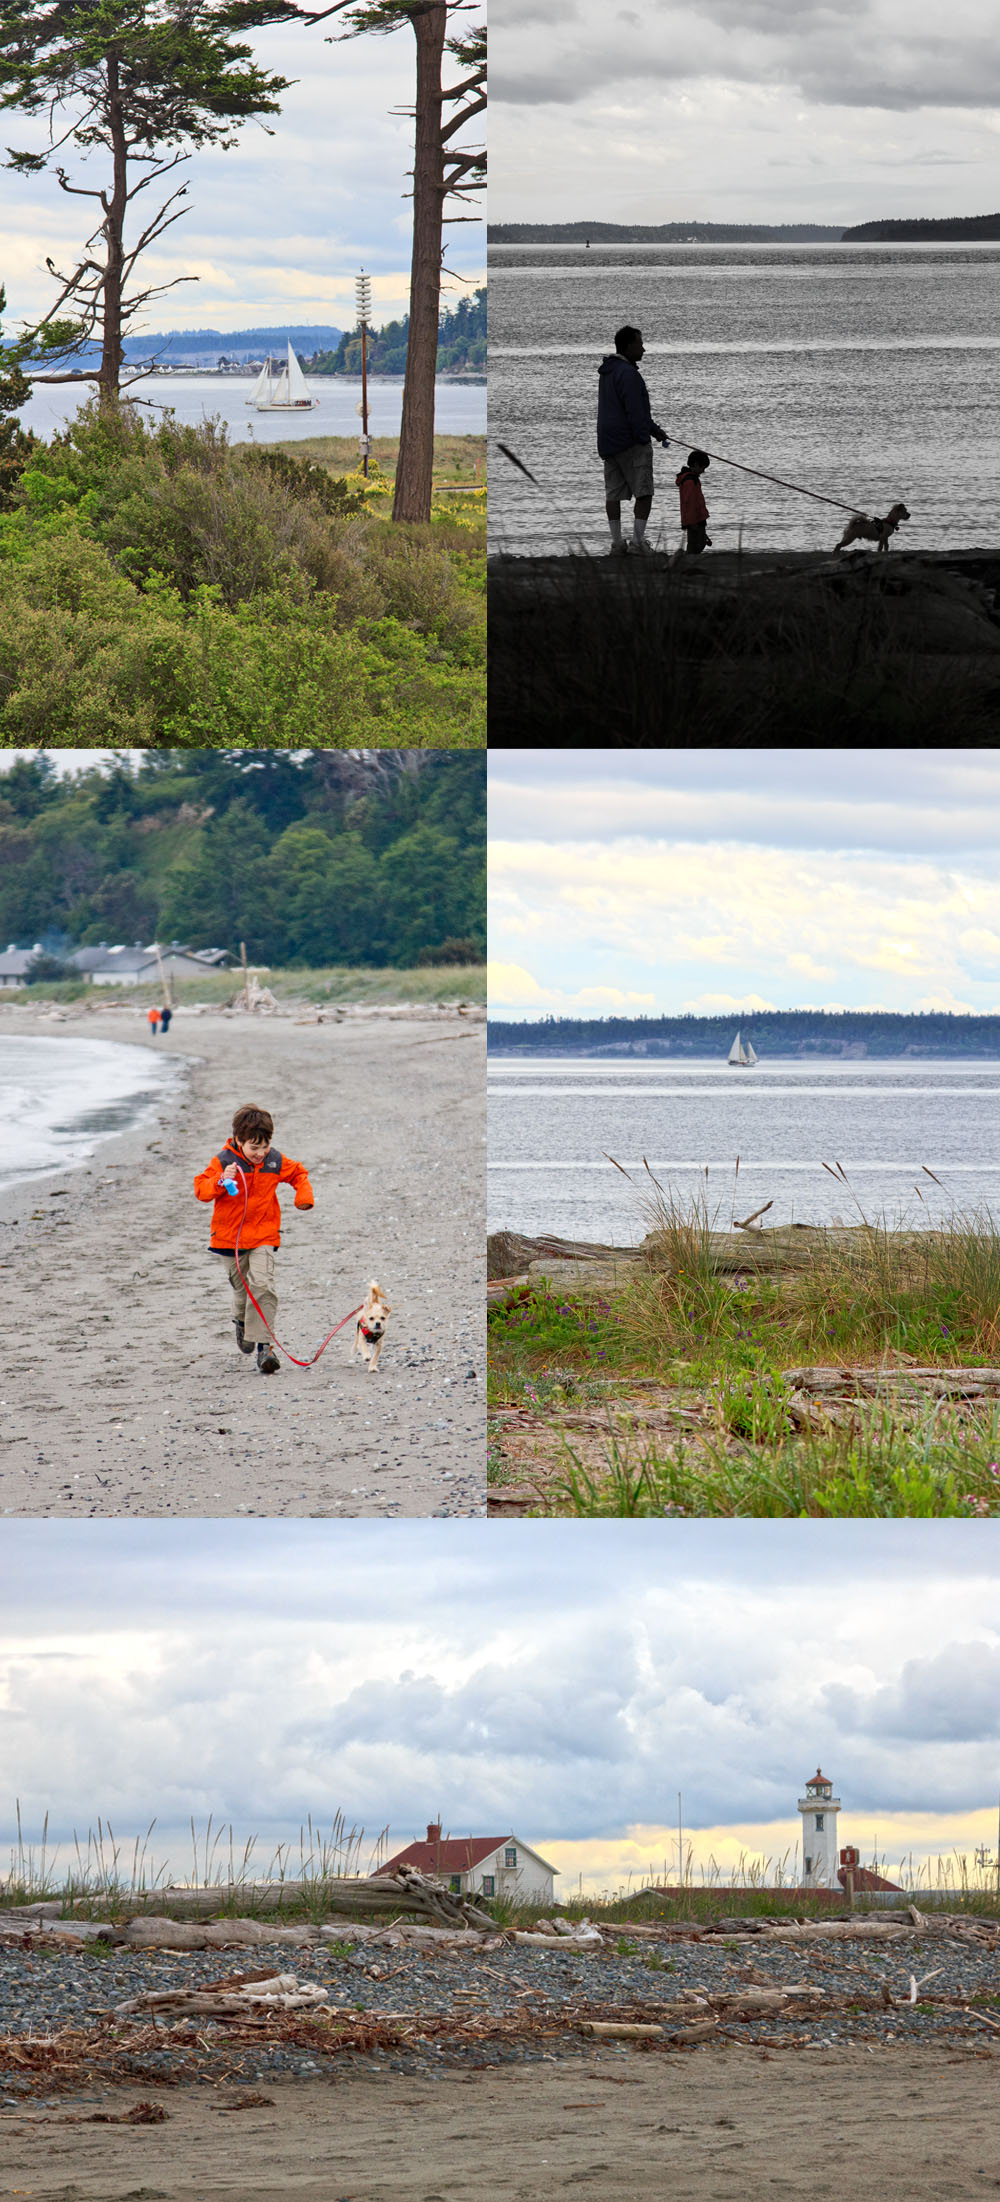 Beach at Fort Worden State Park